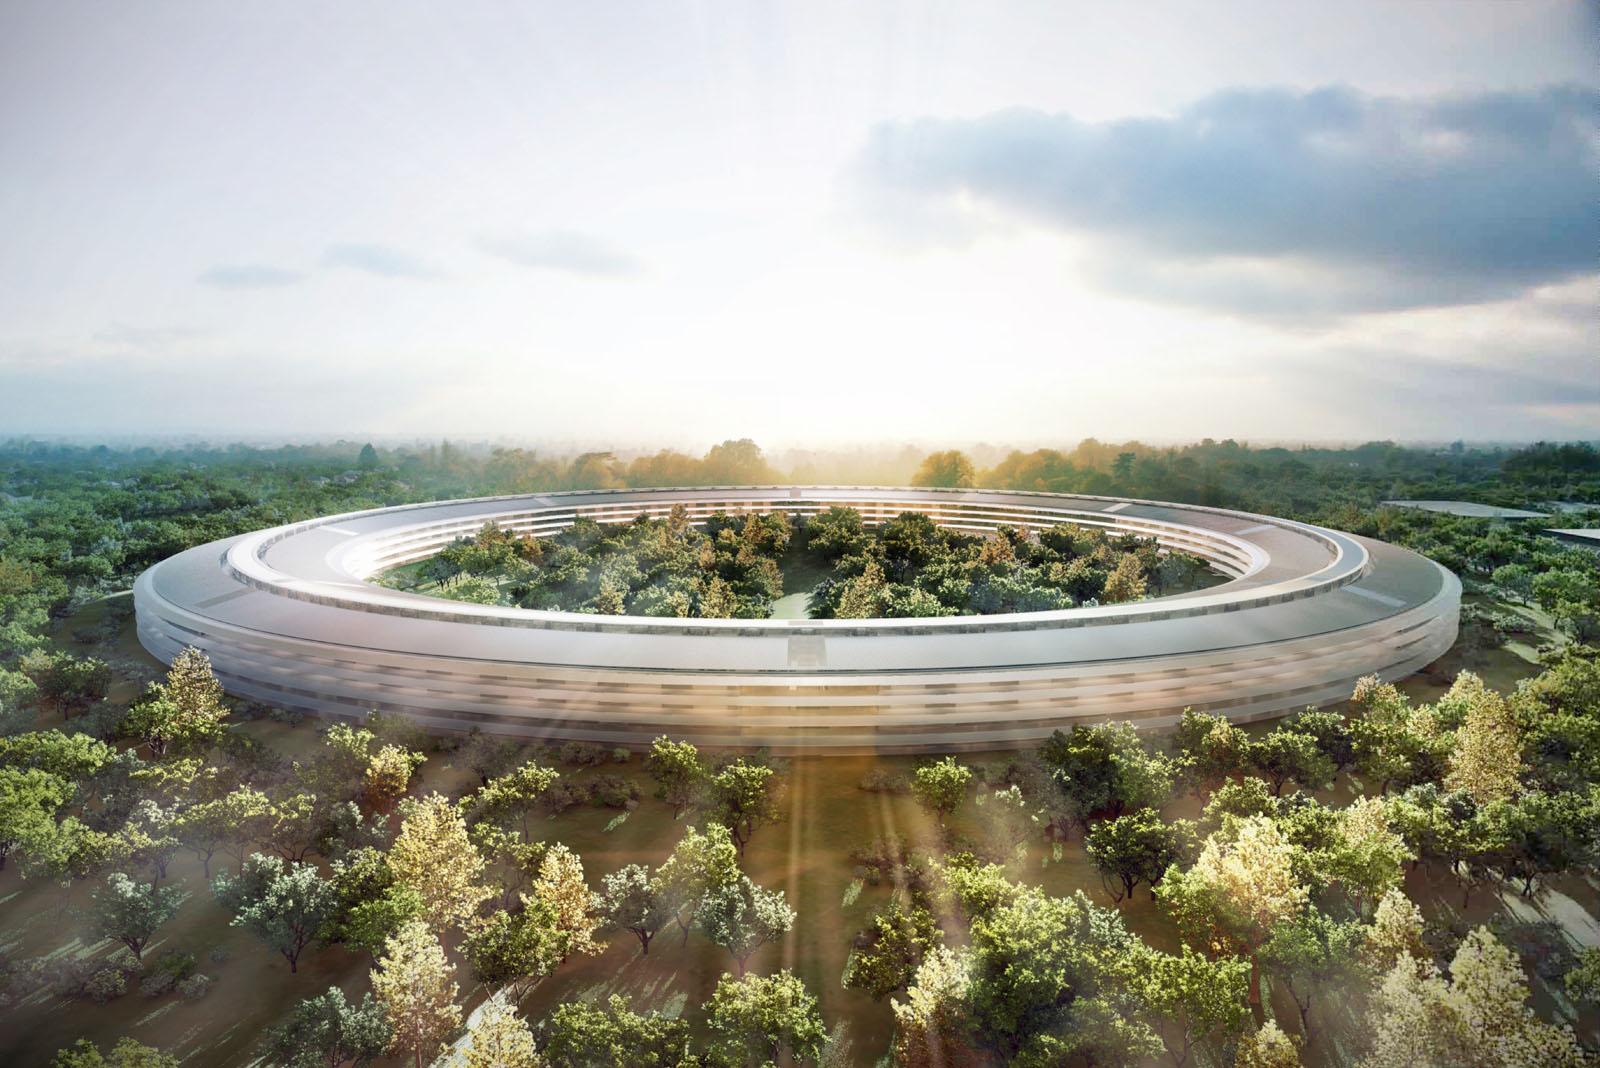 New Apple Campus Renderings 1 Apple releases brochures to neighbors, discussing new campus